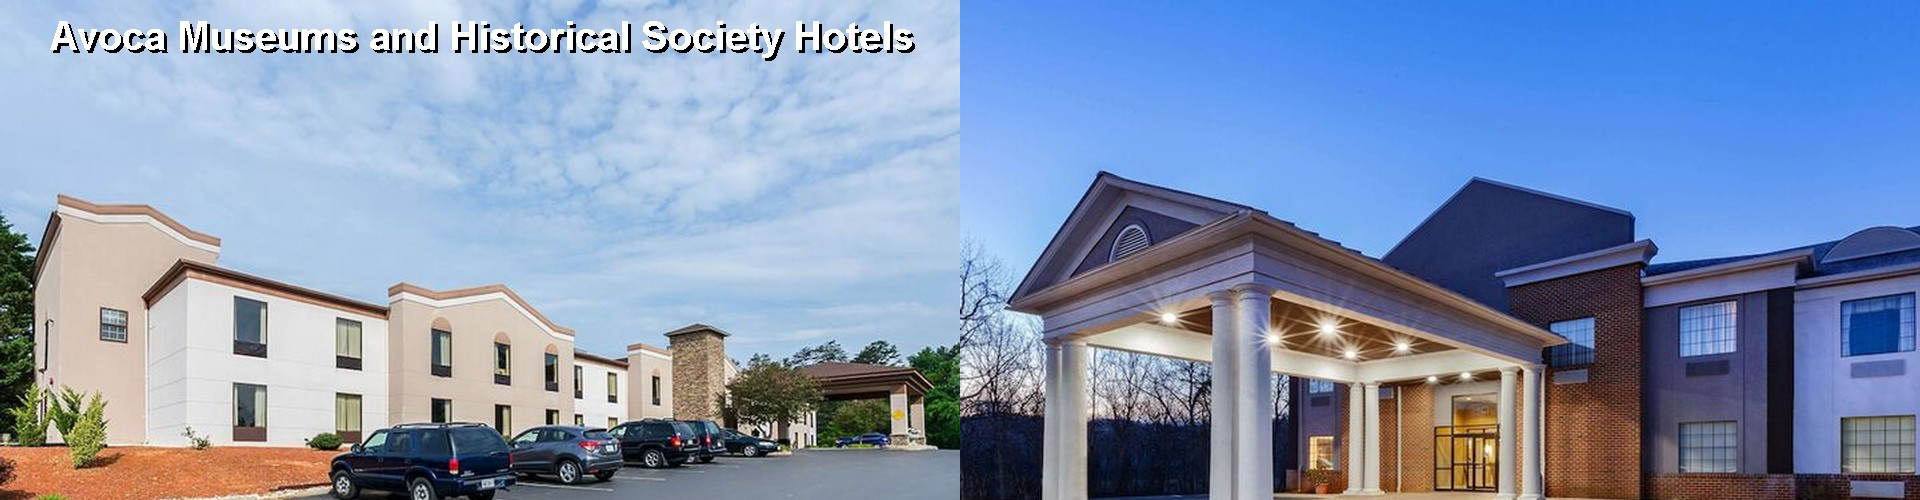 5 Best Hotels near Avoca Museums and Historical Society